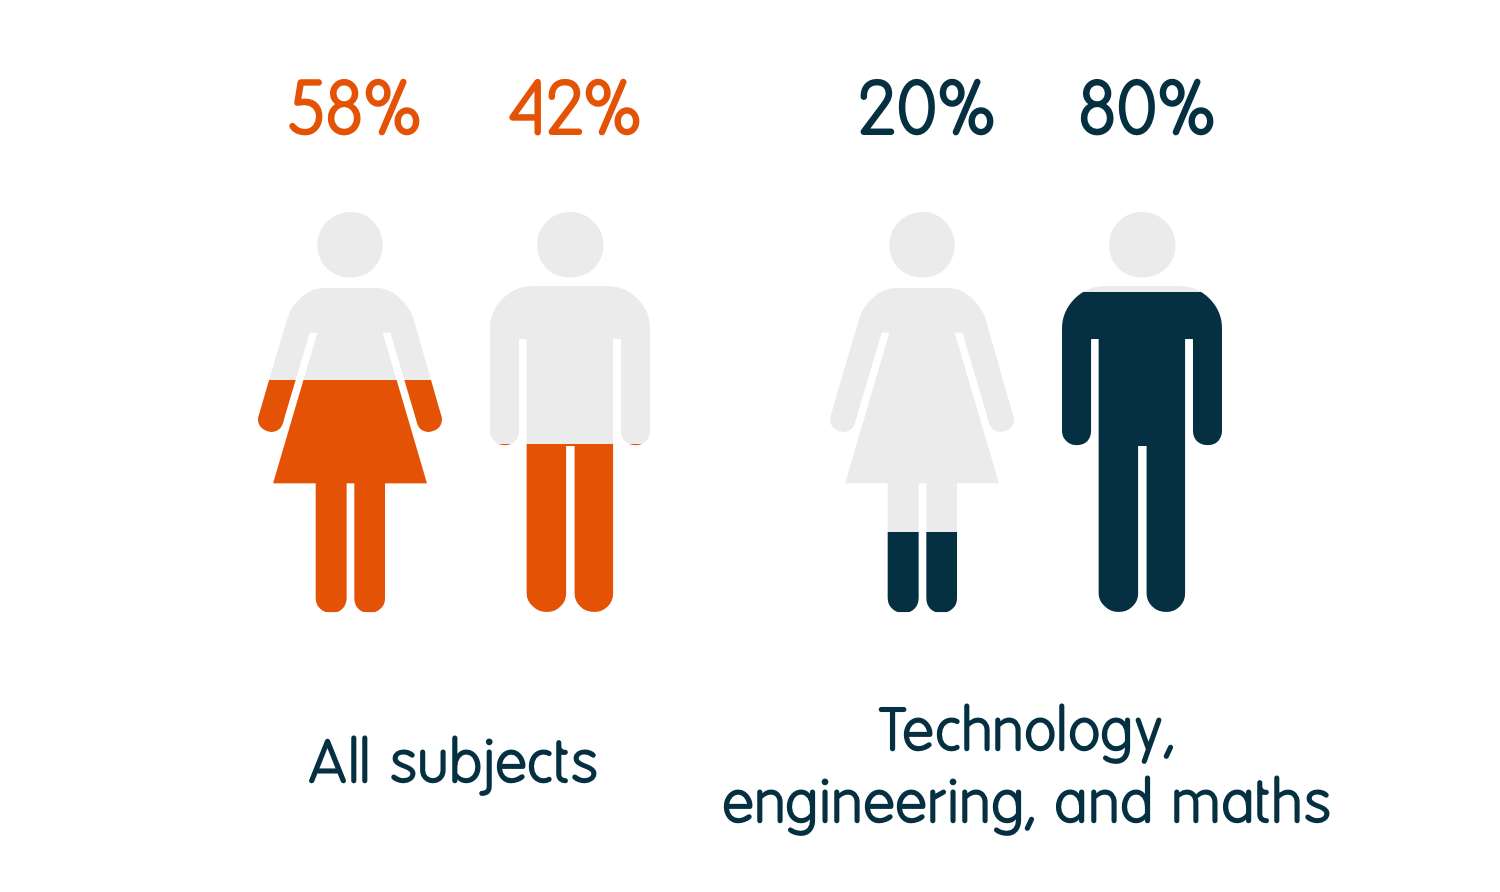 20% of technology, engineering, and maths graduates identify as female and 80% as male, compared to 58% female and 42% male for all graduates.